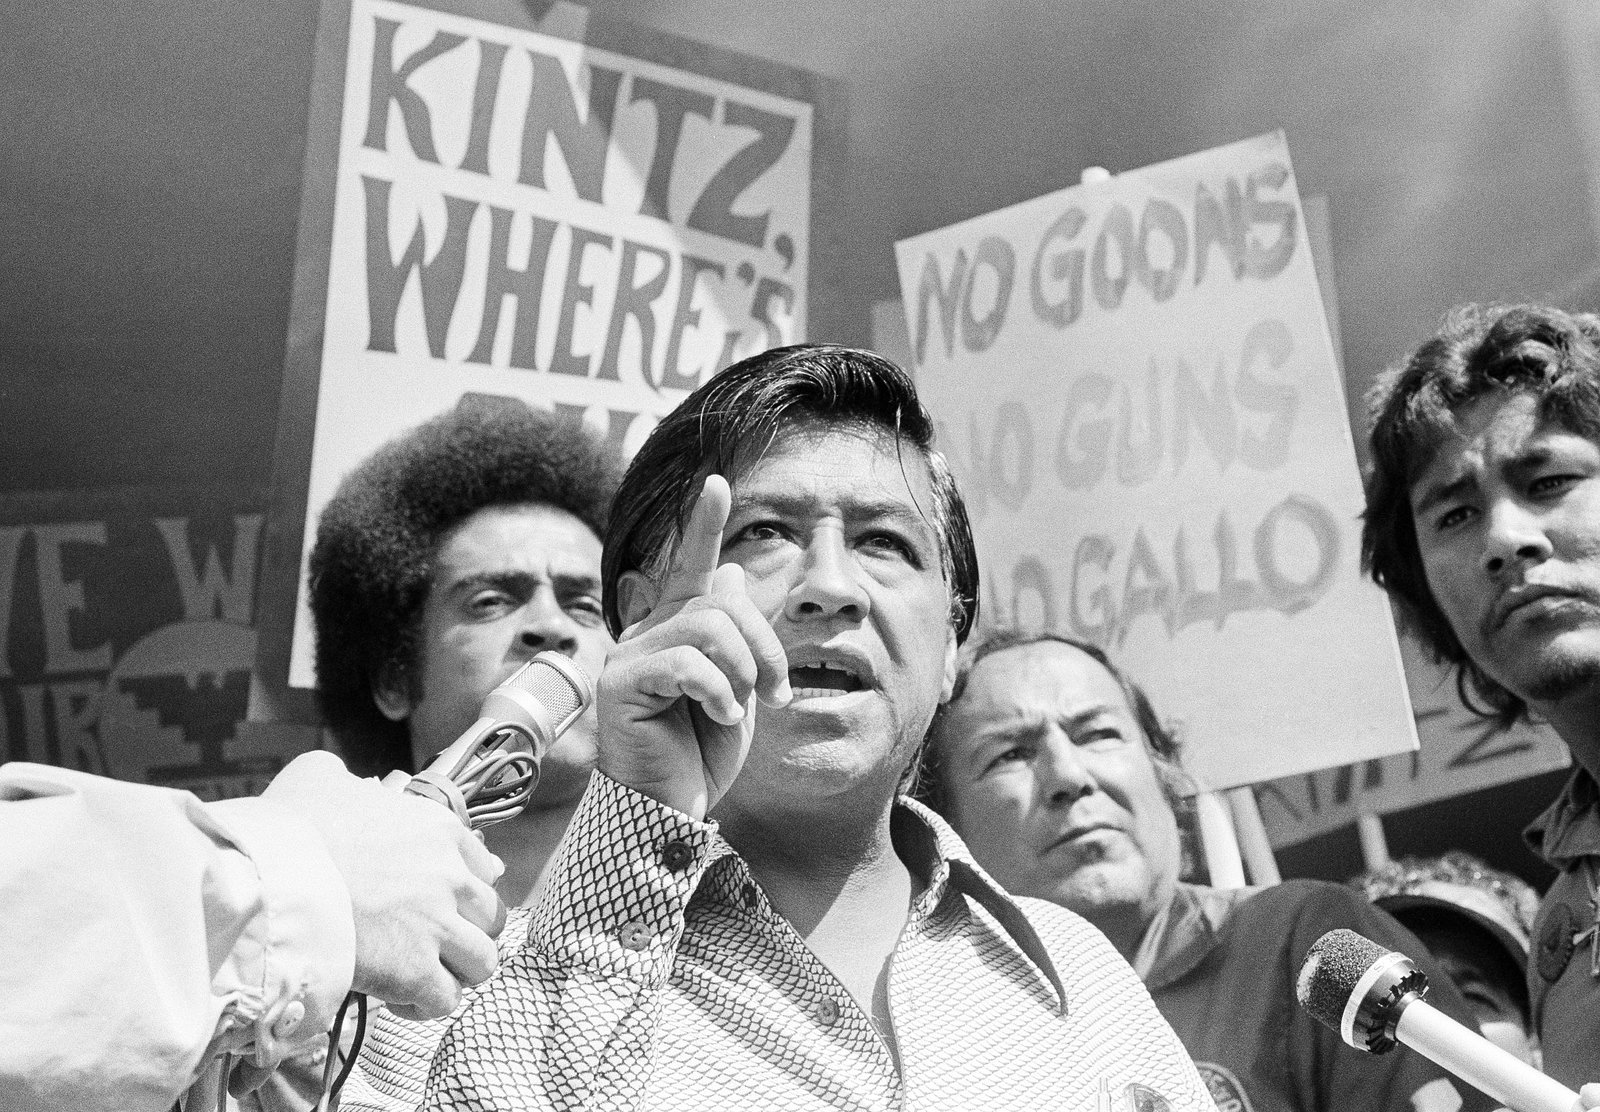 Cesar Chavez, the head of the United Farm Workers Union, calls for the resignation of Walter Kintz, the first legal counsel for the state Agriculture Labor Relations Board, in Sacramento, Calif., on Sept. 16, 1975. Chavez's efforts in California culminated in landmark legislation that protected the rights of the state's farmworkers and created the ALRB. AP